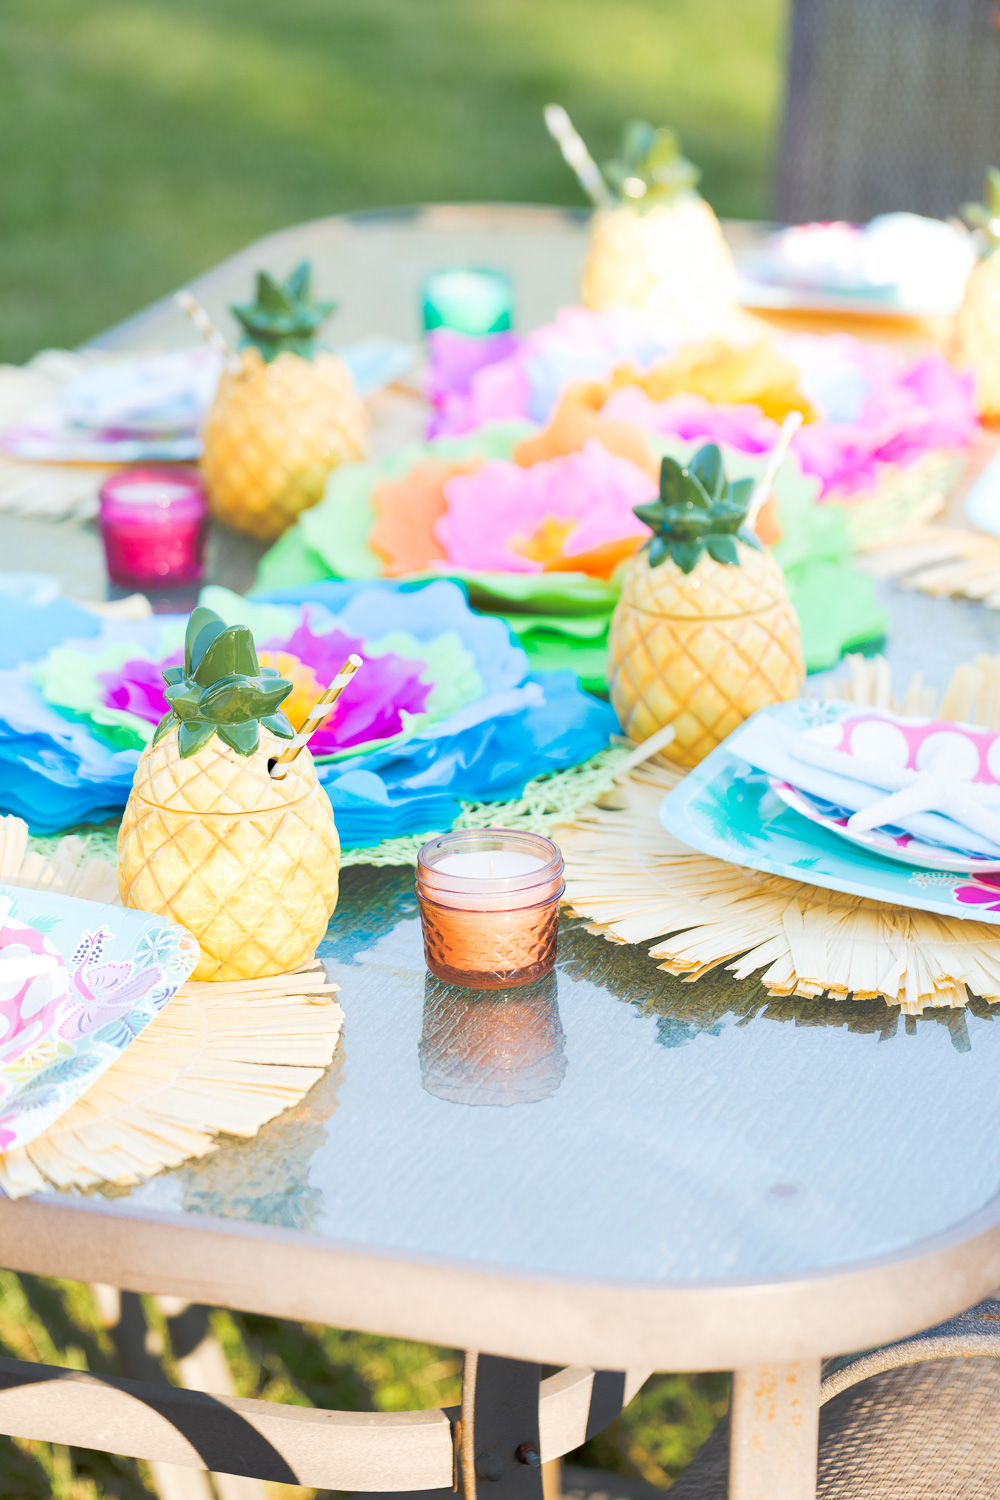 Girls night is extra fun when you are getting together Luau style!  These Luau party ideas are so fun to celebrate summer with your closet friends!